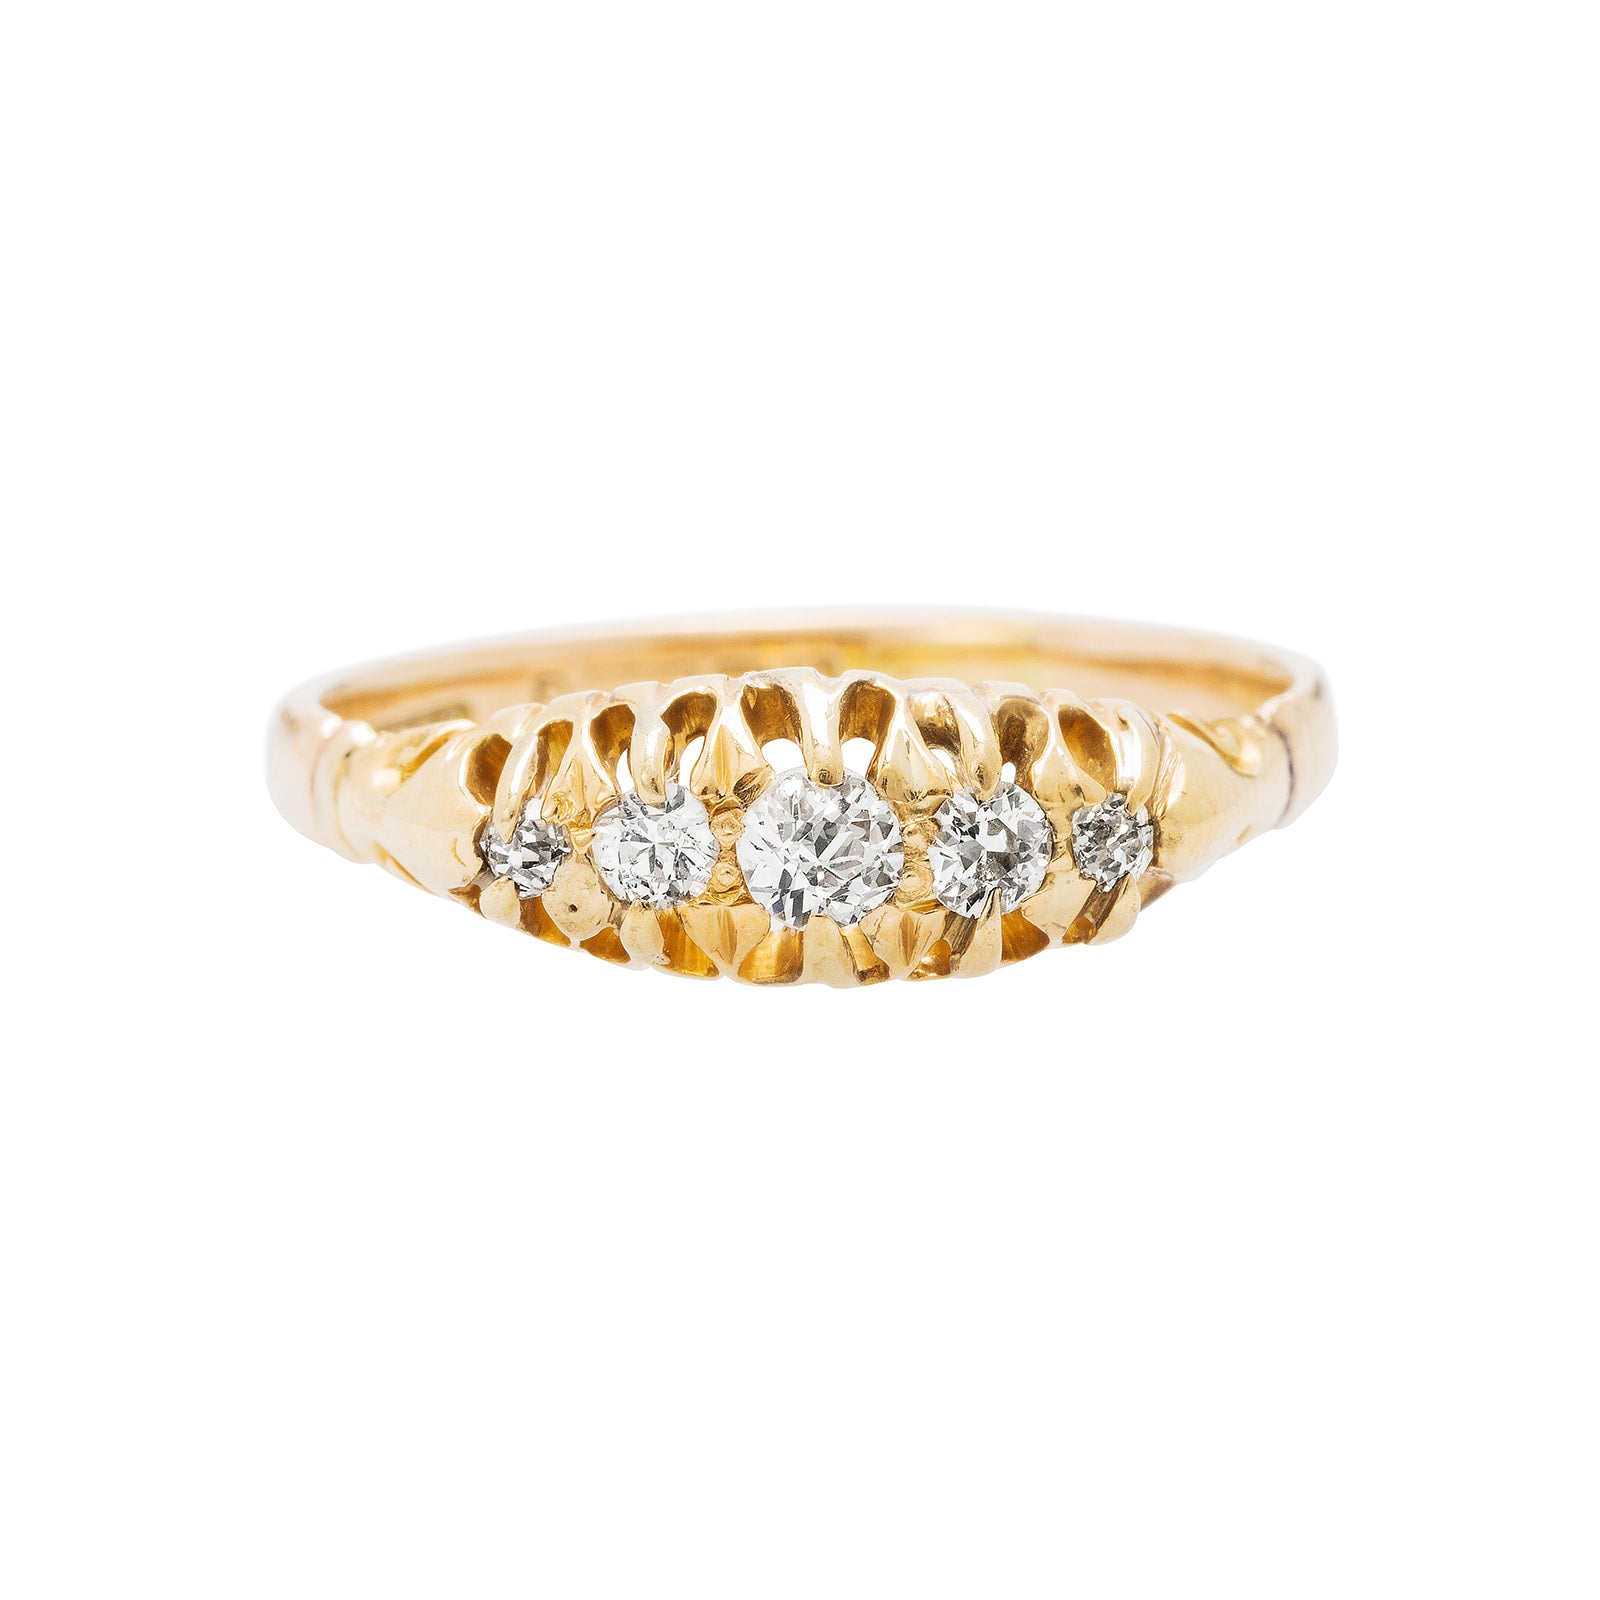 A Classic Authentic Victorian Yellow Gold And Diamond Band With English Hallmarks